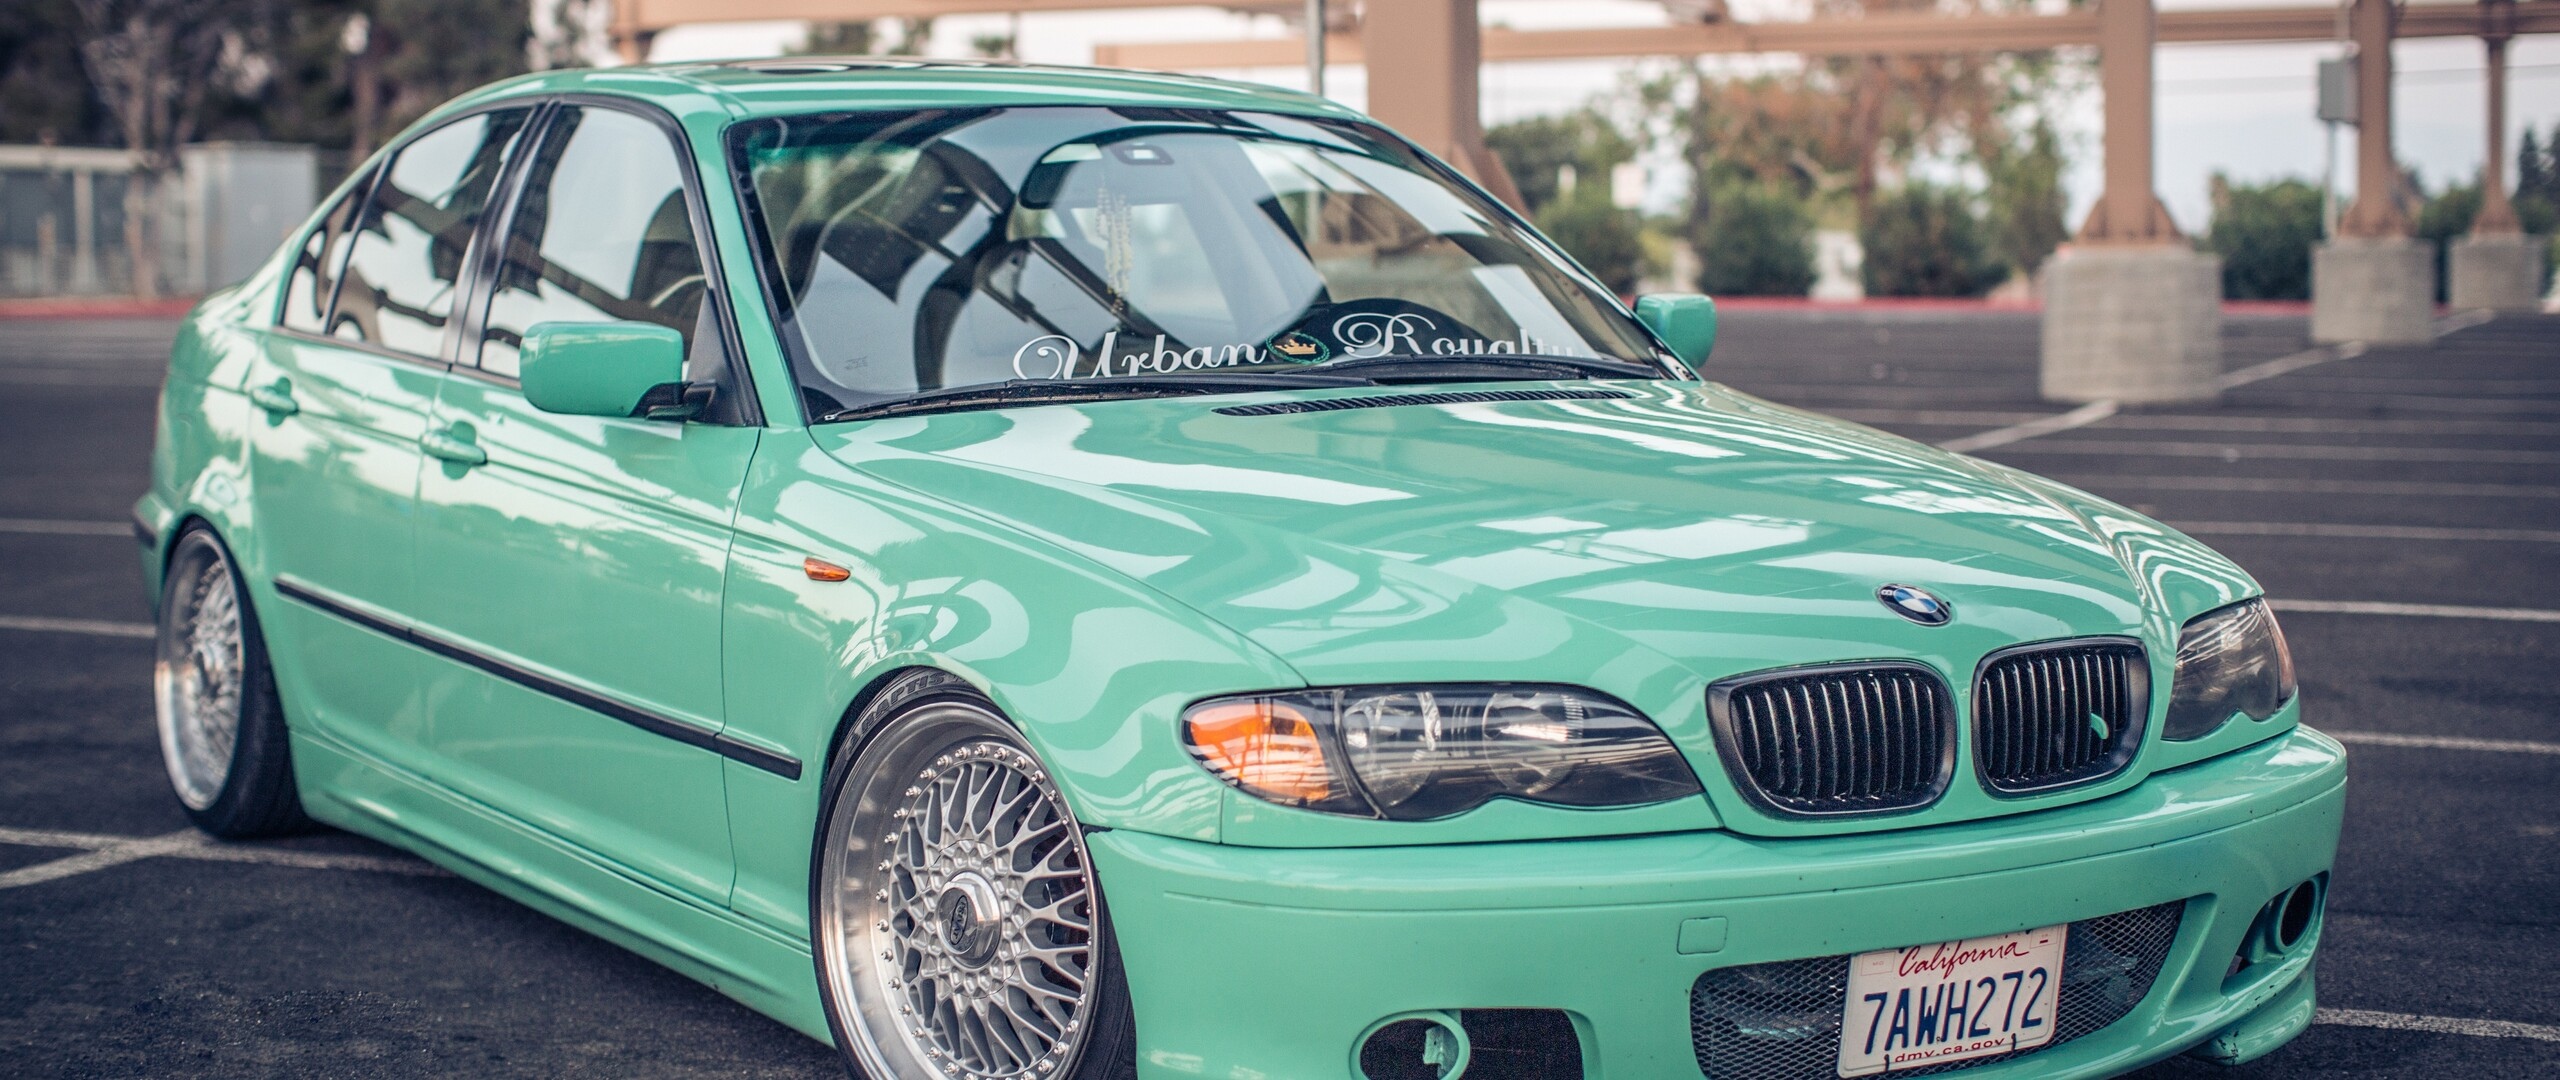 2560x1080 Bmw E46 2560x1080 Resolution Hd 4k Wallpapers Images Backgrounds Photos And Pictures